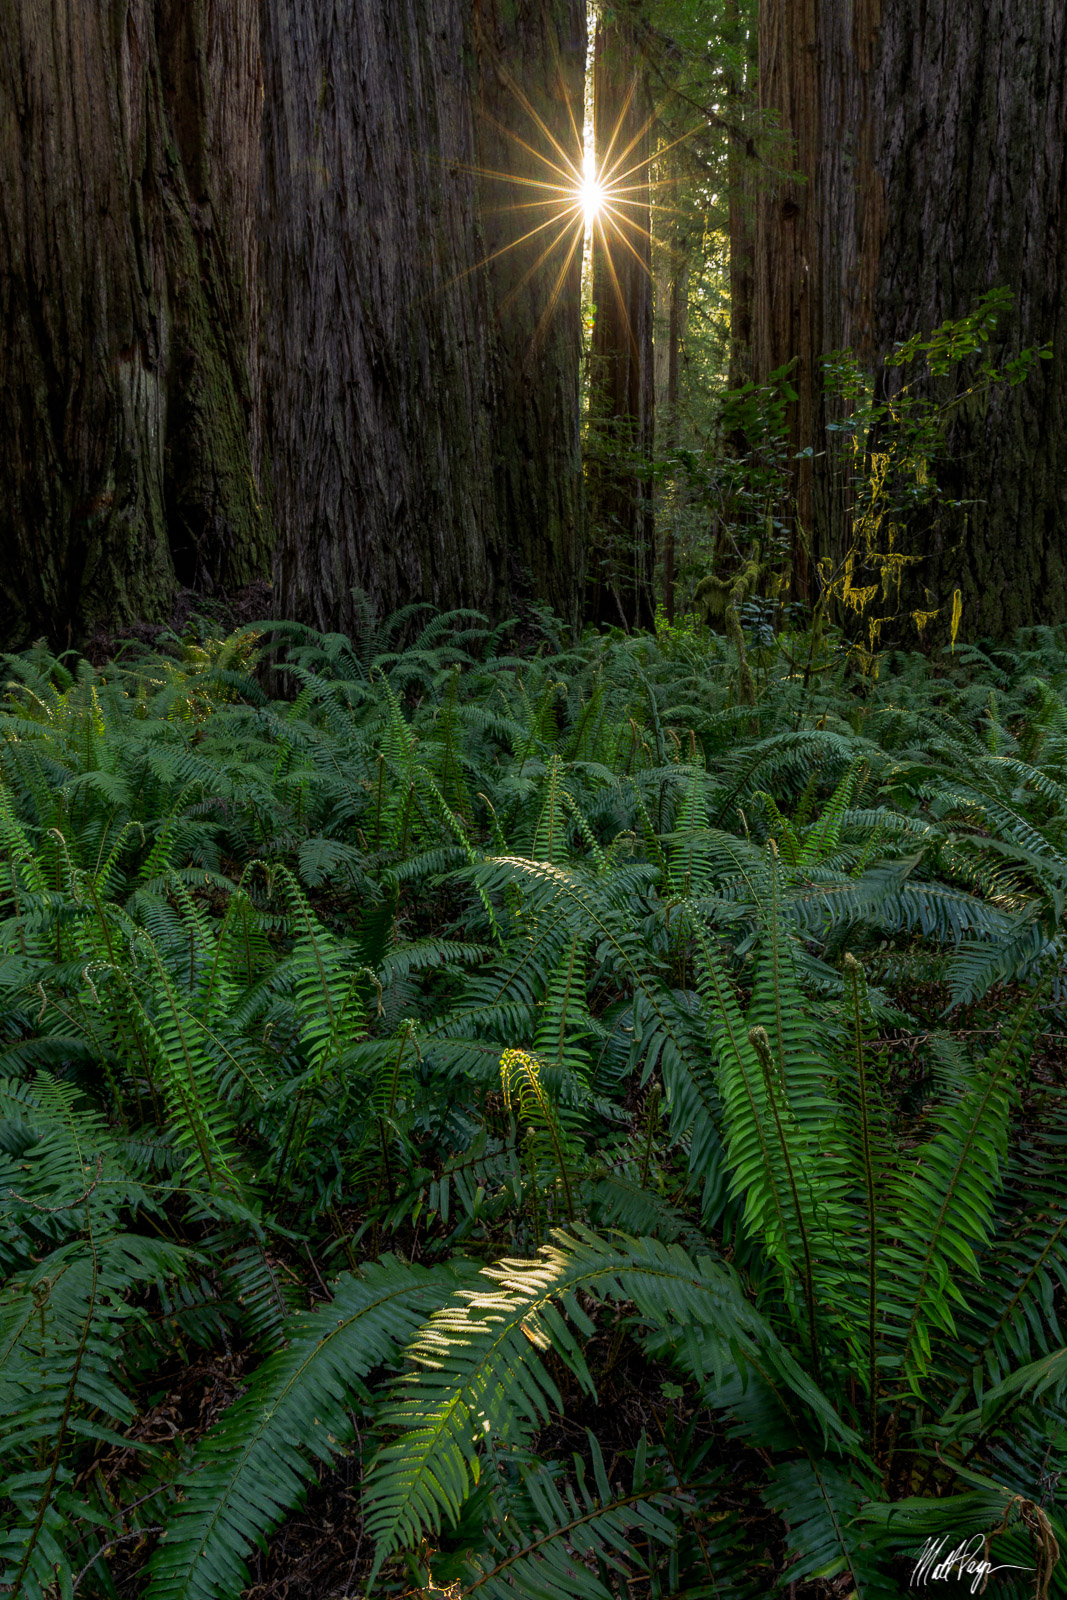 On my very first day in the Redwoods, I discovered this interesting scene of ferns in front of massive Redwoods trees. The setting...